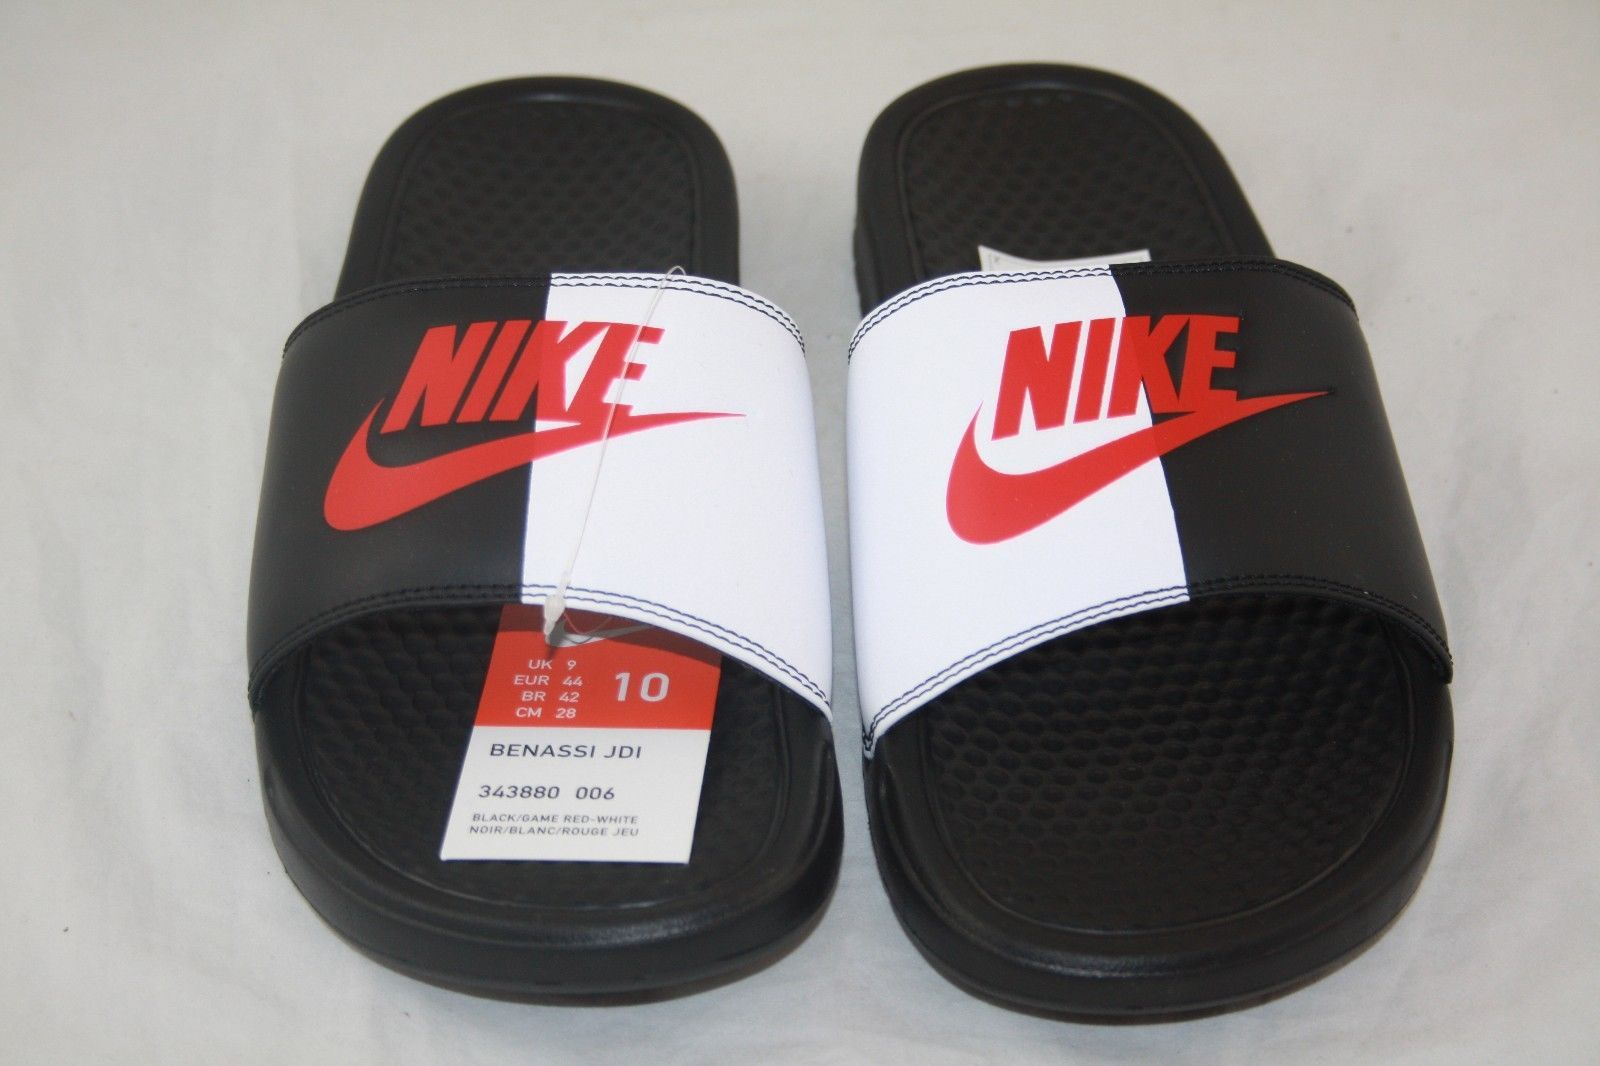 online retailer 259e7 4177b New Nike BENASSI JDI Men s Black Game Red-White 343880-006 Slide Sandals    eBay